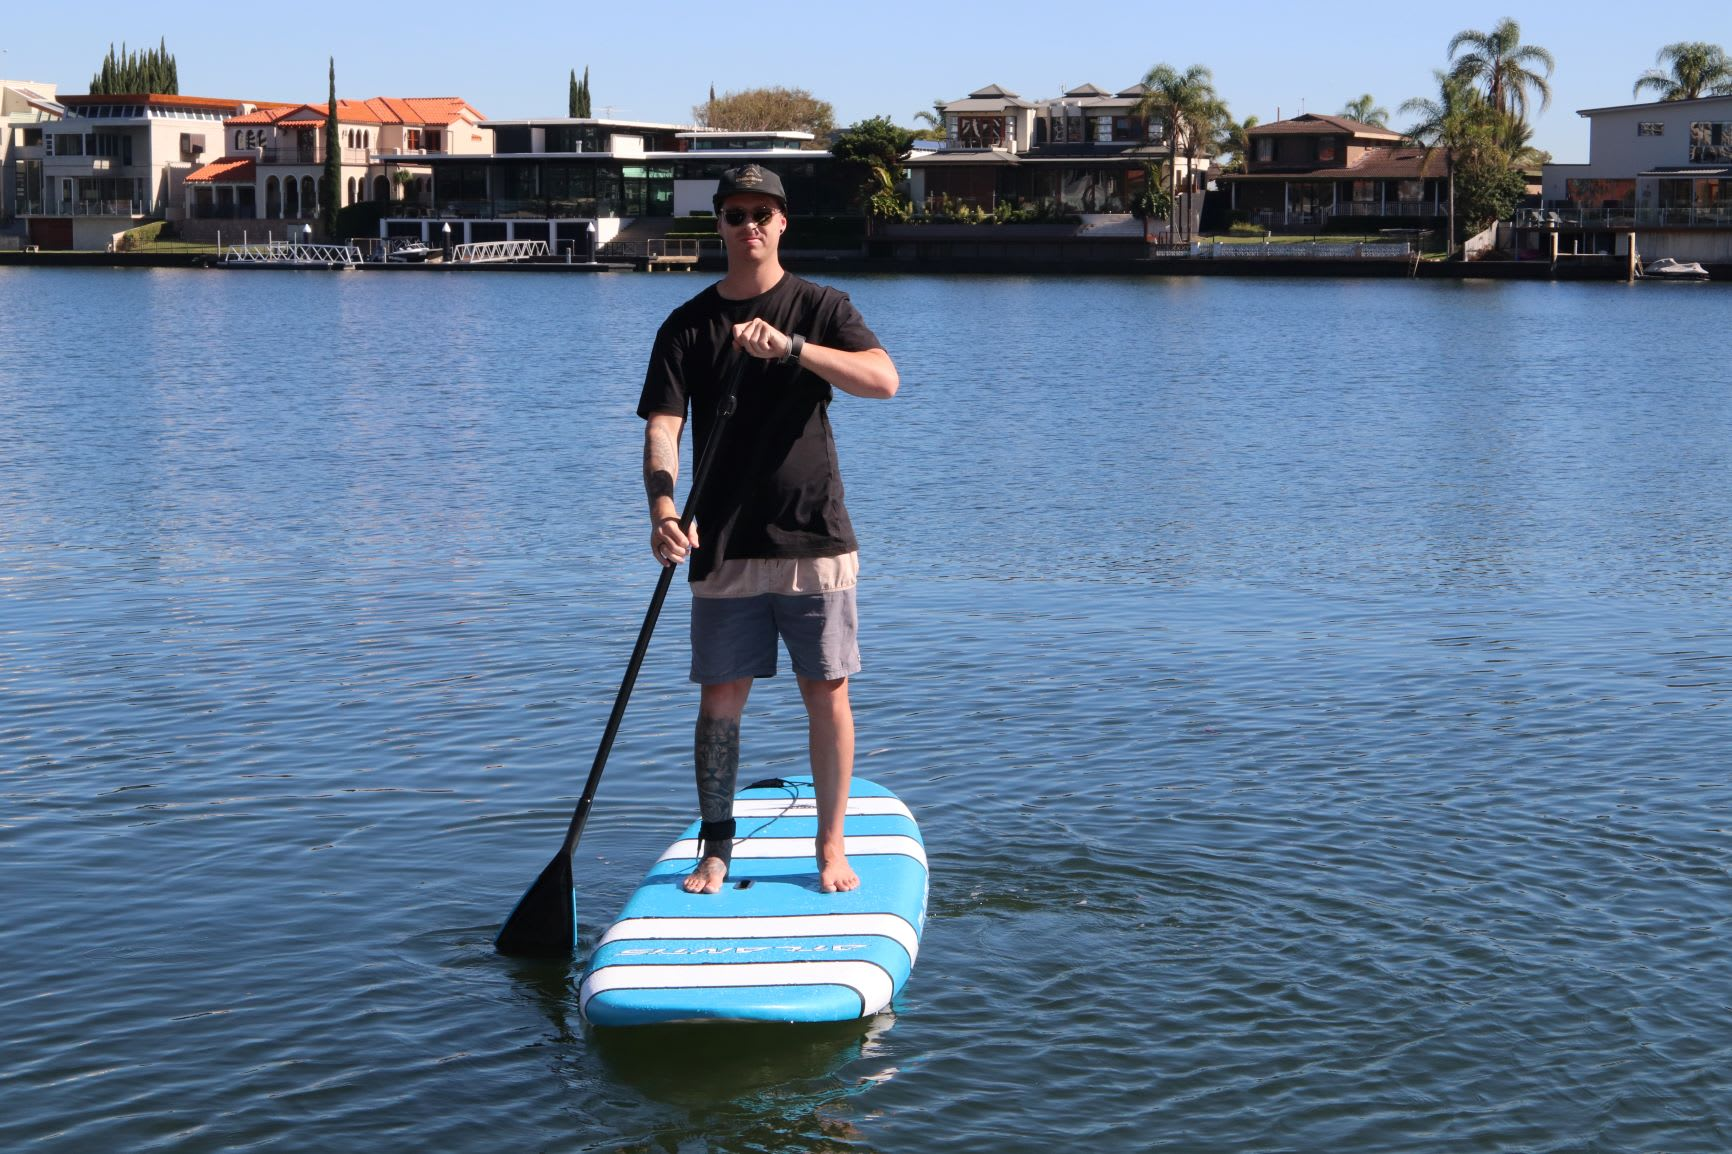 30 Minute Jet Ski Tour and 1 hour Stand Up Paddleboard hire, For 2 - Gold Coast - EOFY SPECIAL!